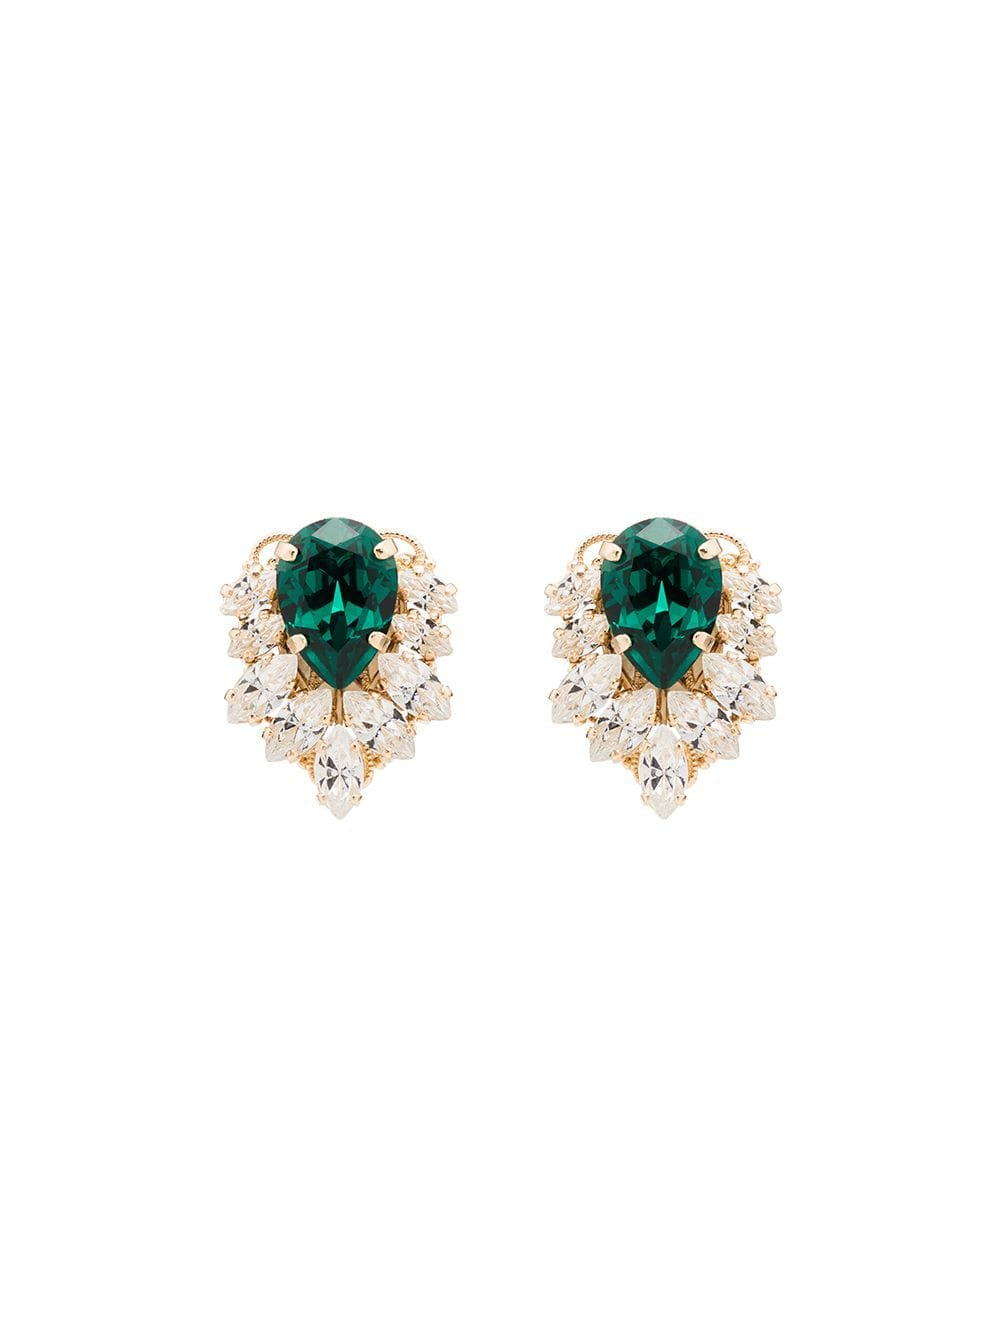 Anton Heunis crystal cluster earrings $105 - Buy Online AW19 - Quick Shipping, Price